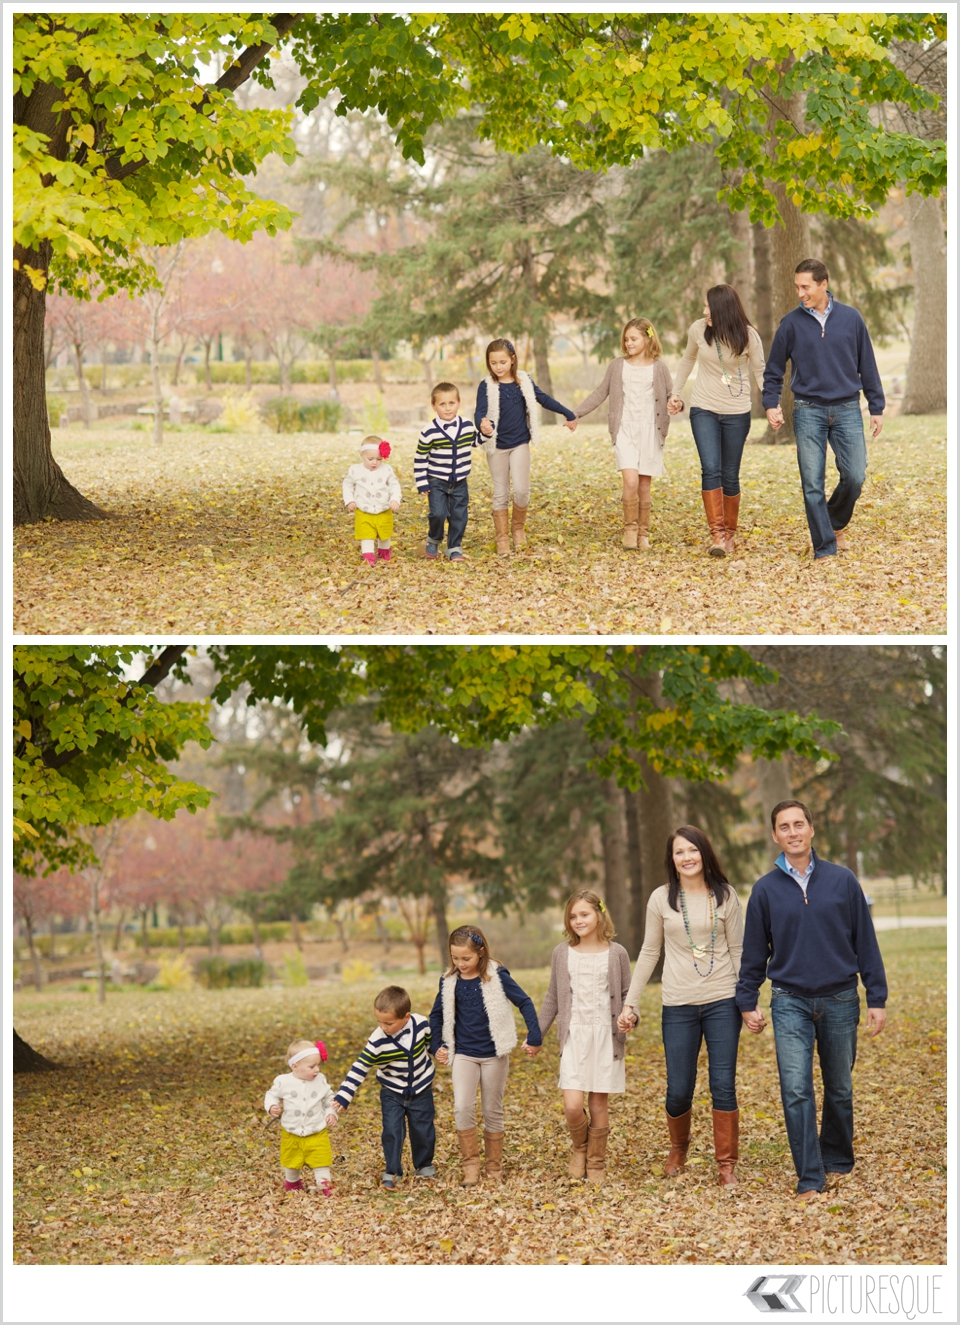 family photography by Lauren Neff of Picturesque